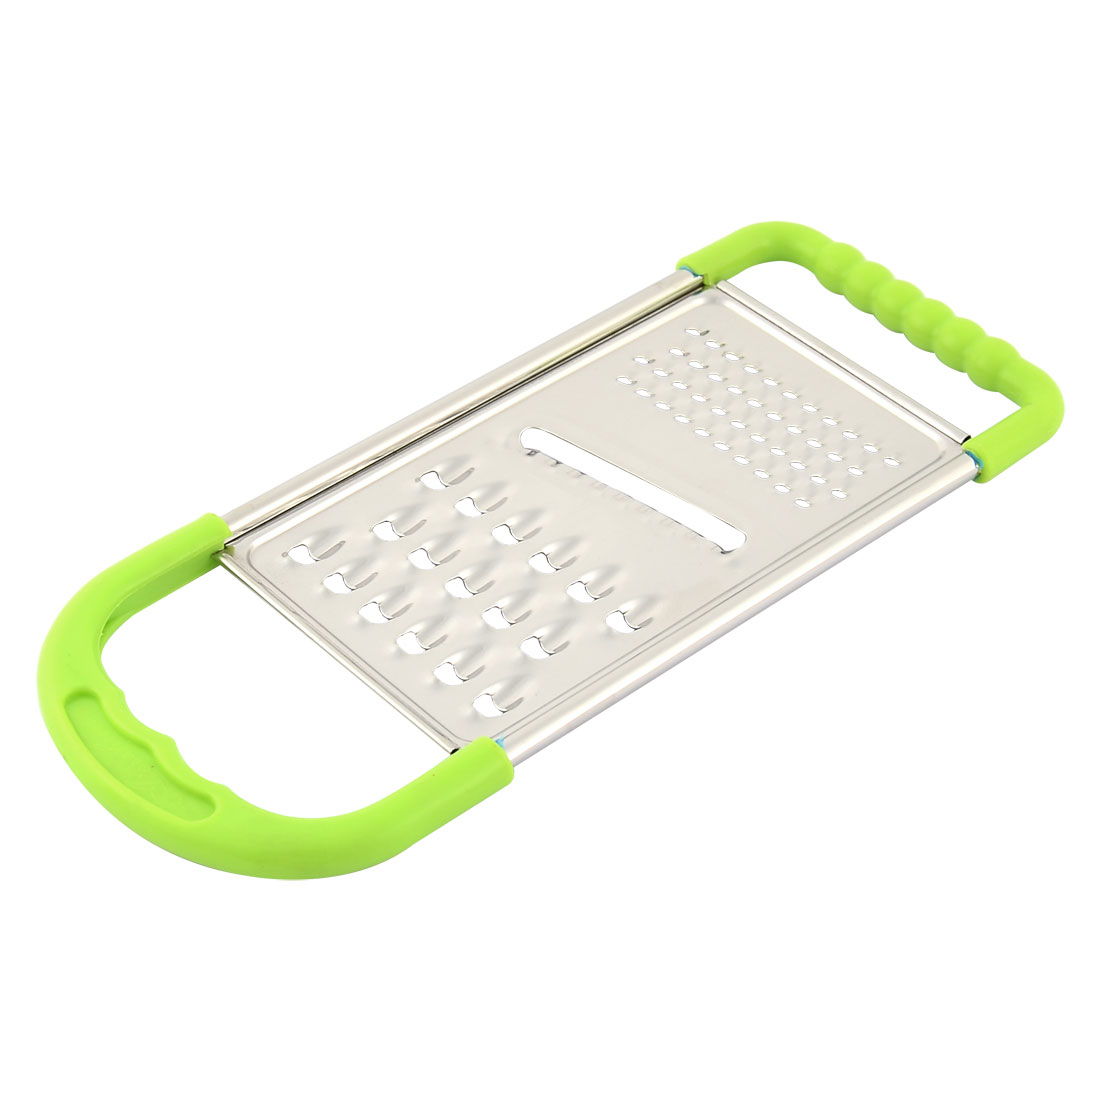 Kitchenware Plastic Nonslip Frame Vegetable Grater Peeler Green Silver Tone